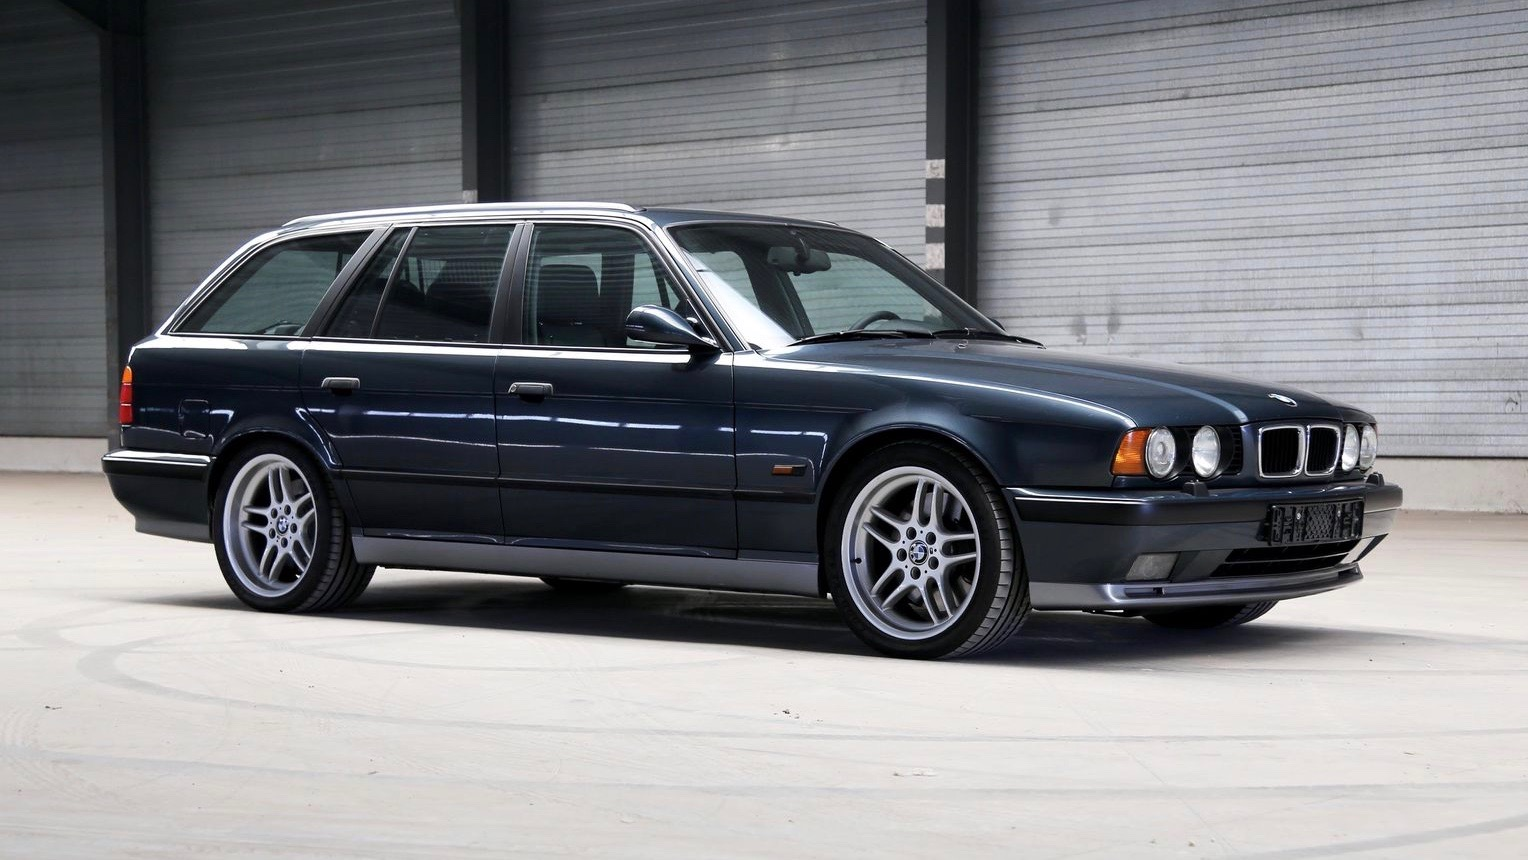 Swagger wagon: 1995 BMW M5 wagon for sale in the US